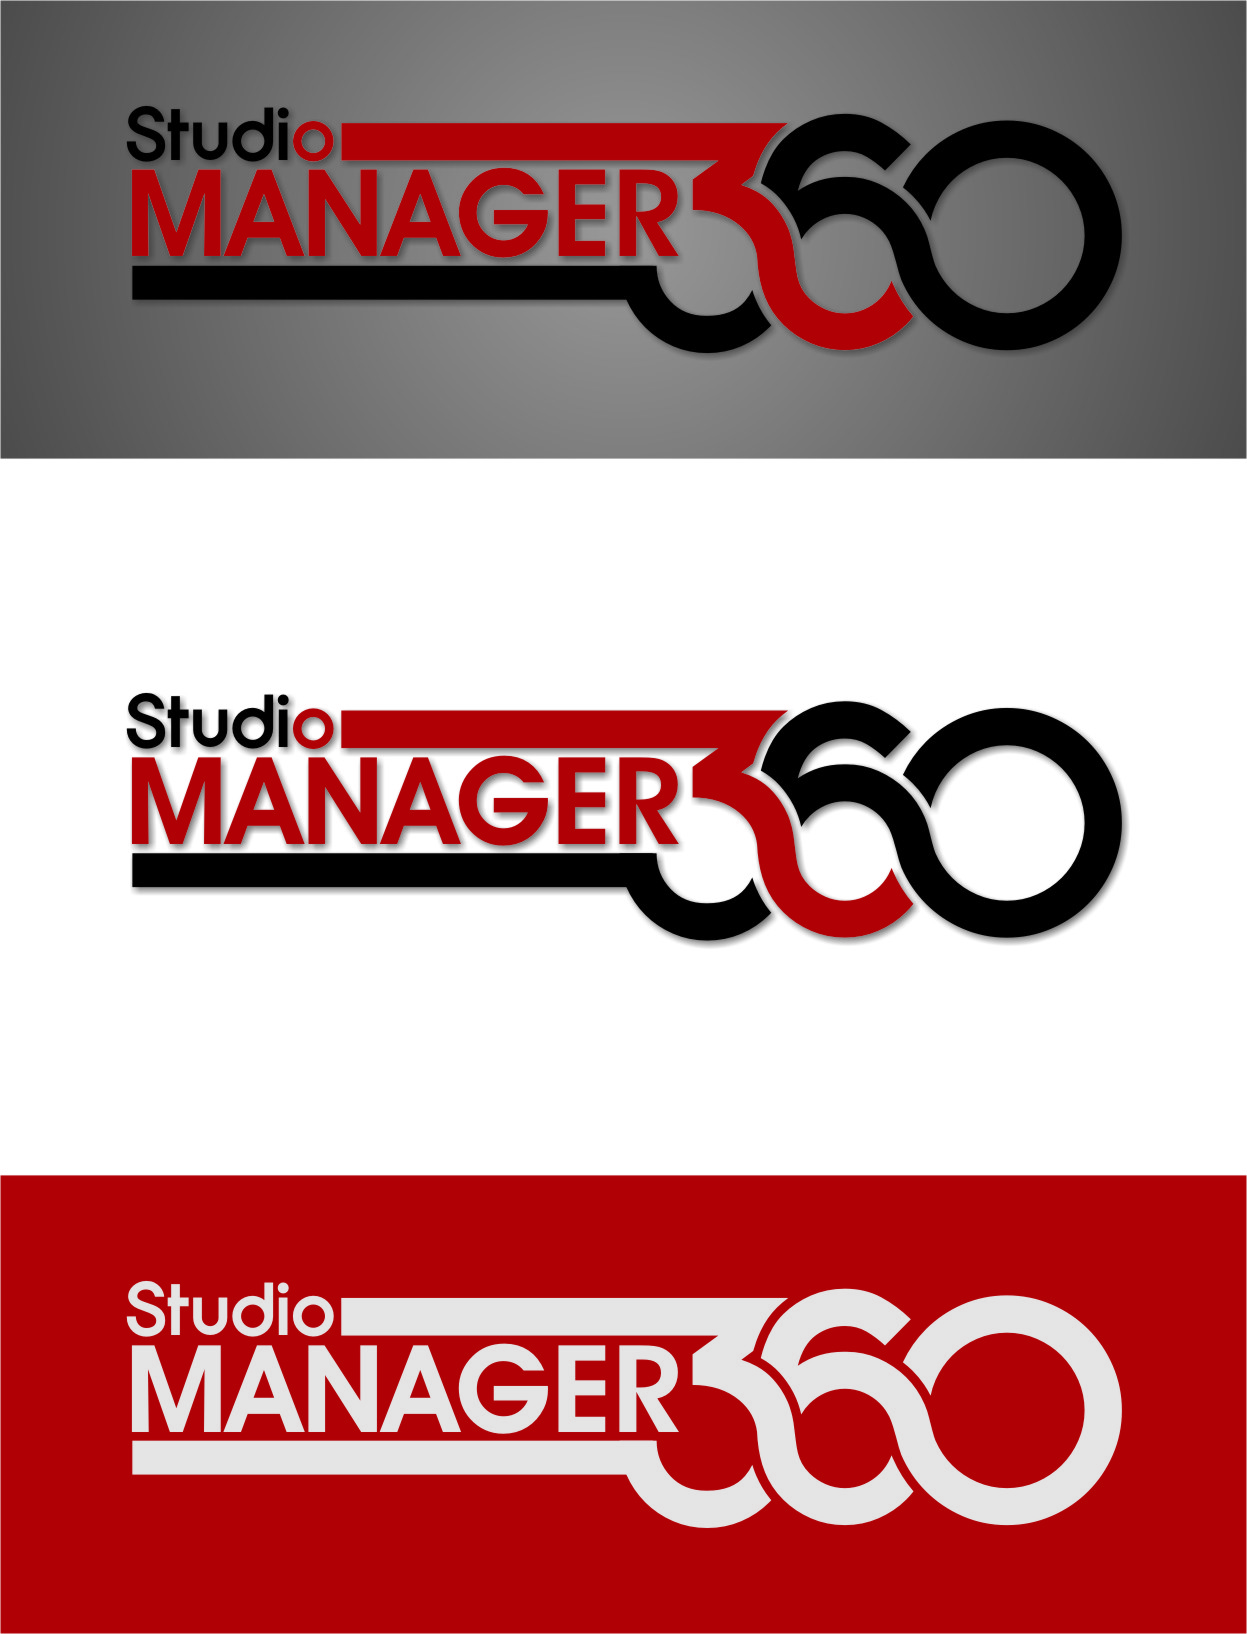 Logo Design by Ngepet_art - Entry No. 53 in the Logo Design Contest Unique Logo Design Wanted for Studio Manager 360.